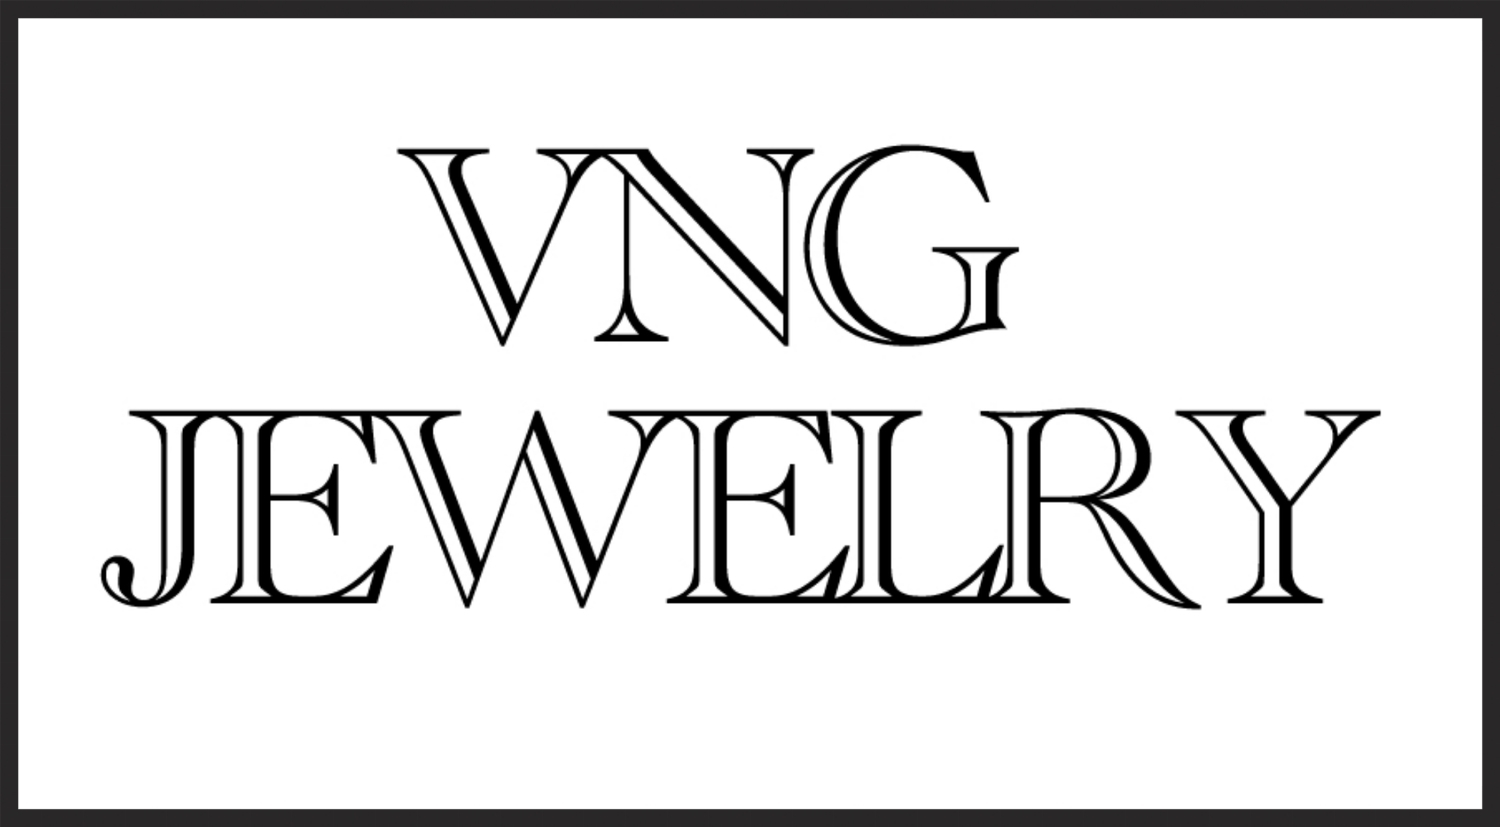 VNG JEWELRY